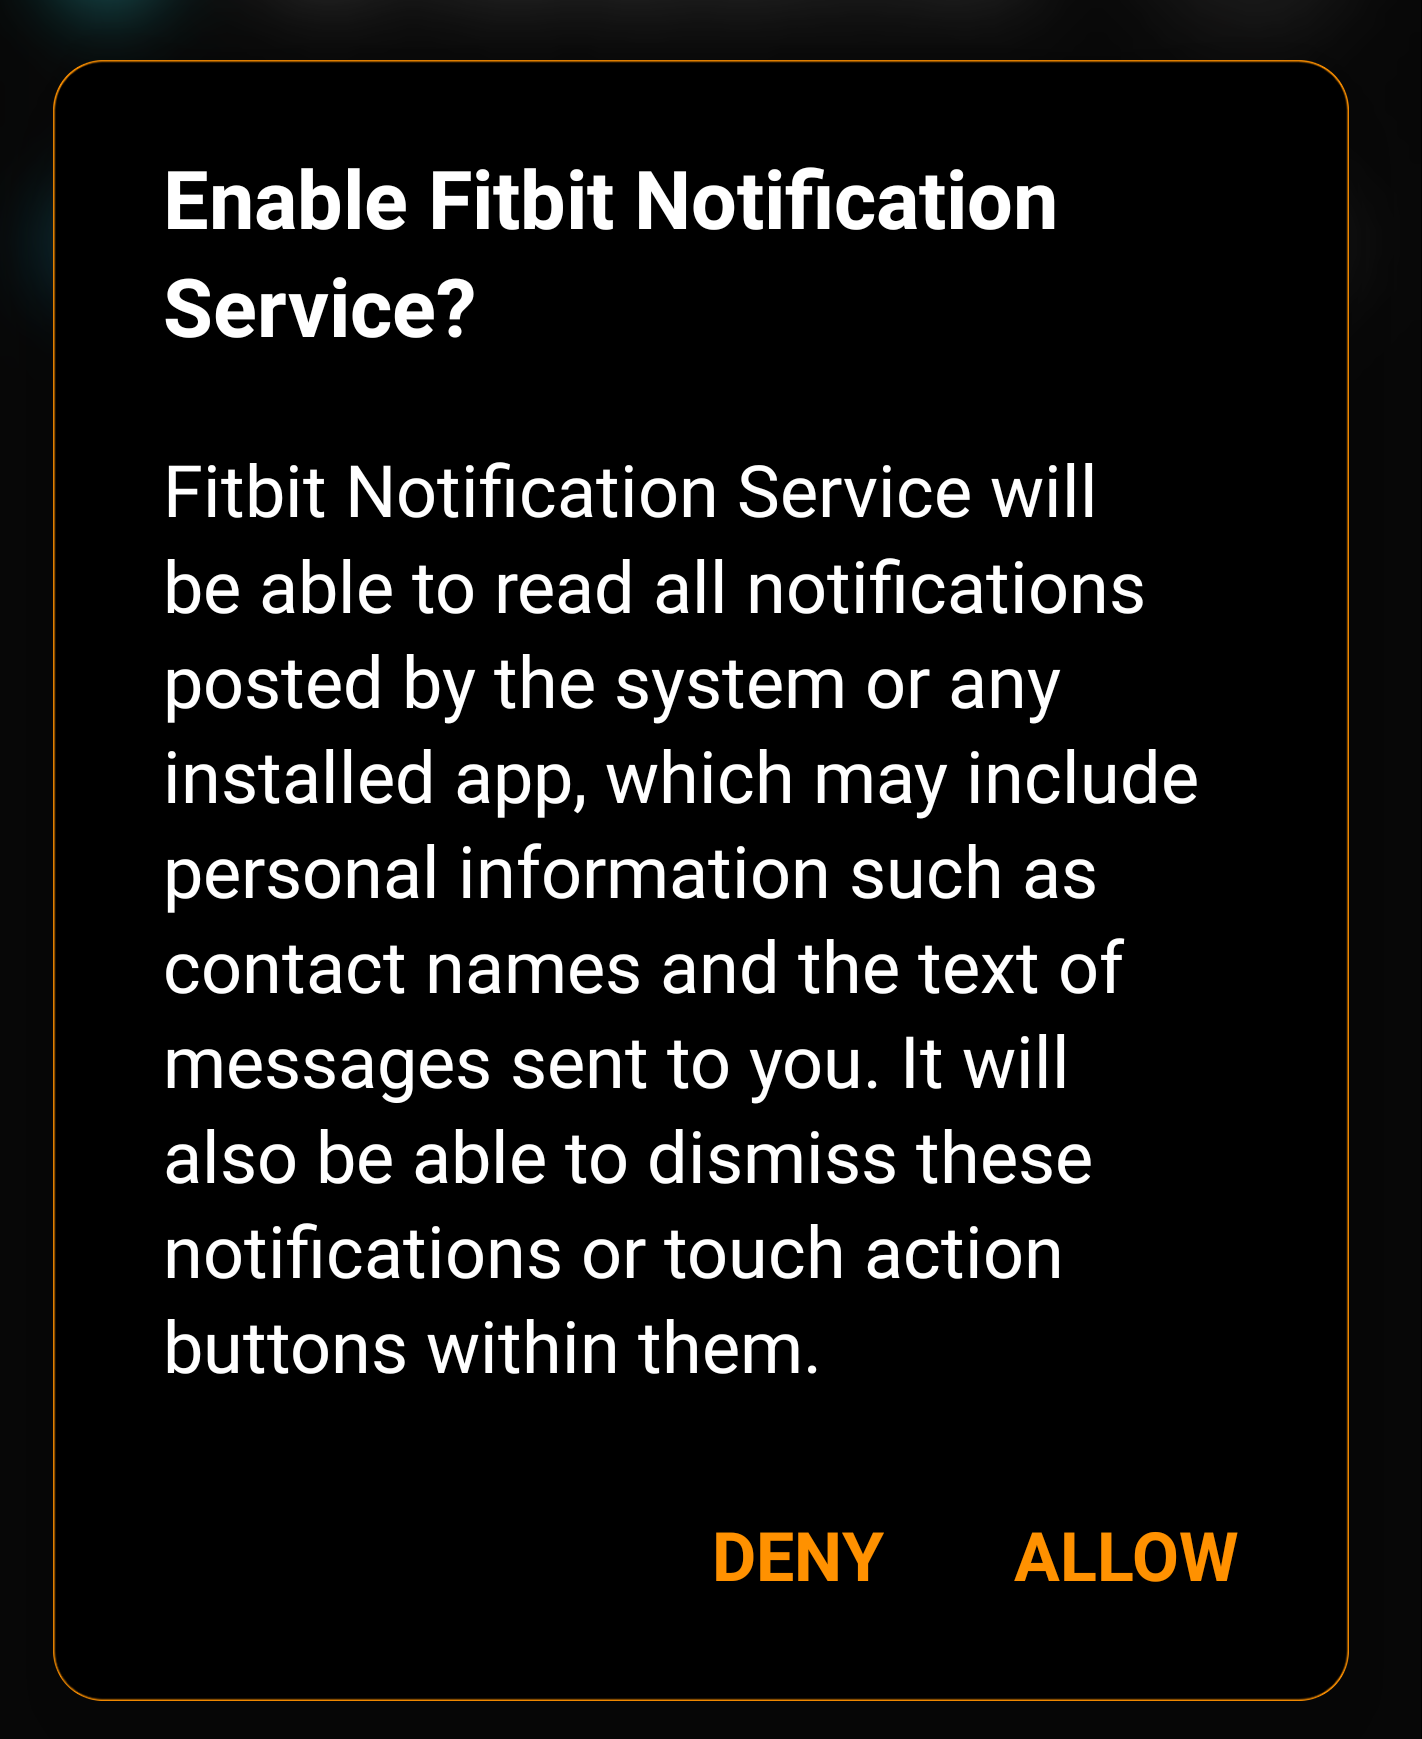 Enable Fitbit Notification Service? Fitbit Notification Service will be able to read all notifications posted by the system or any installed app, which may include personal information such as contact names and the text messages sent to you. It will also be able to dismiss these notifications or touch action buttons within them.